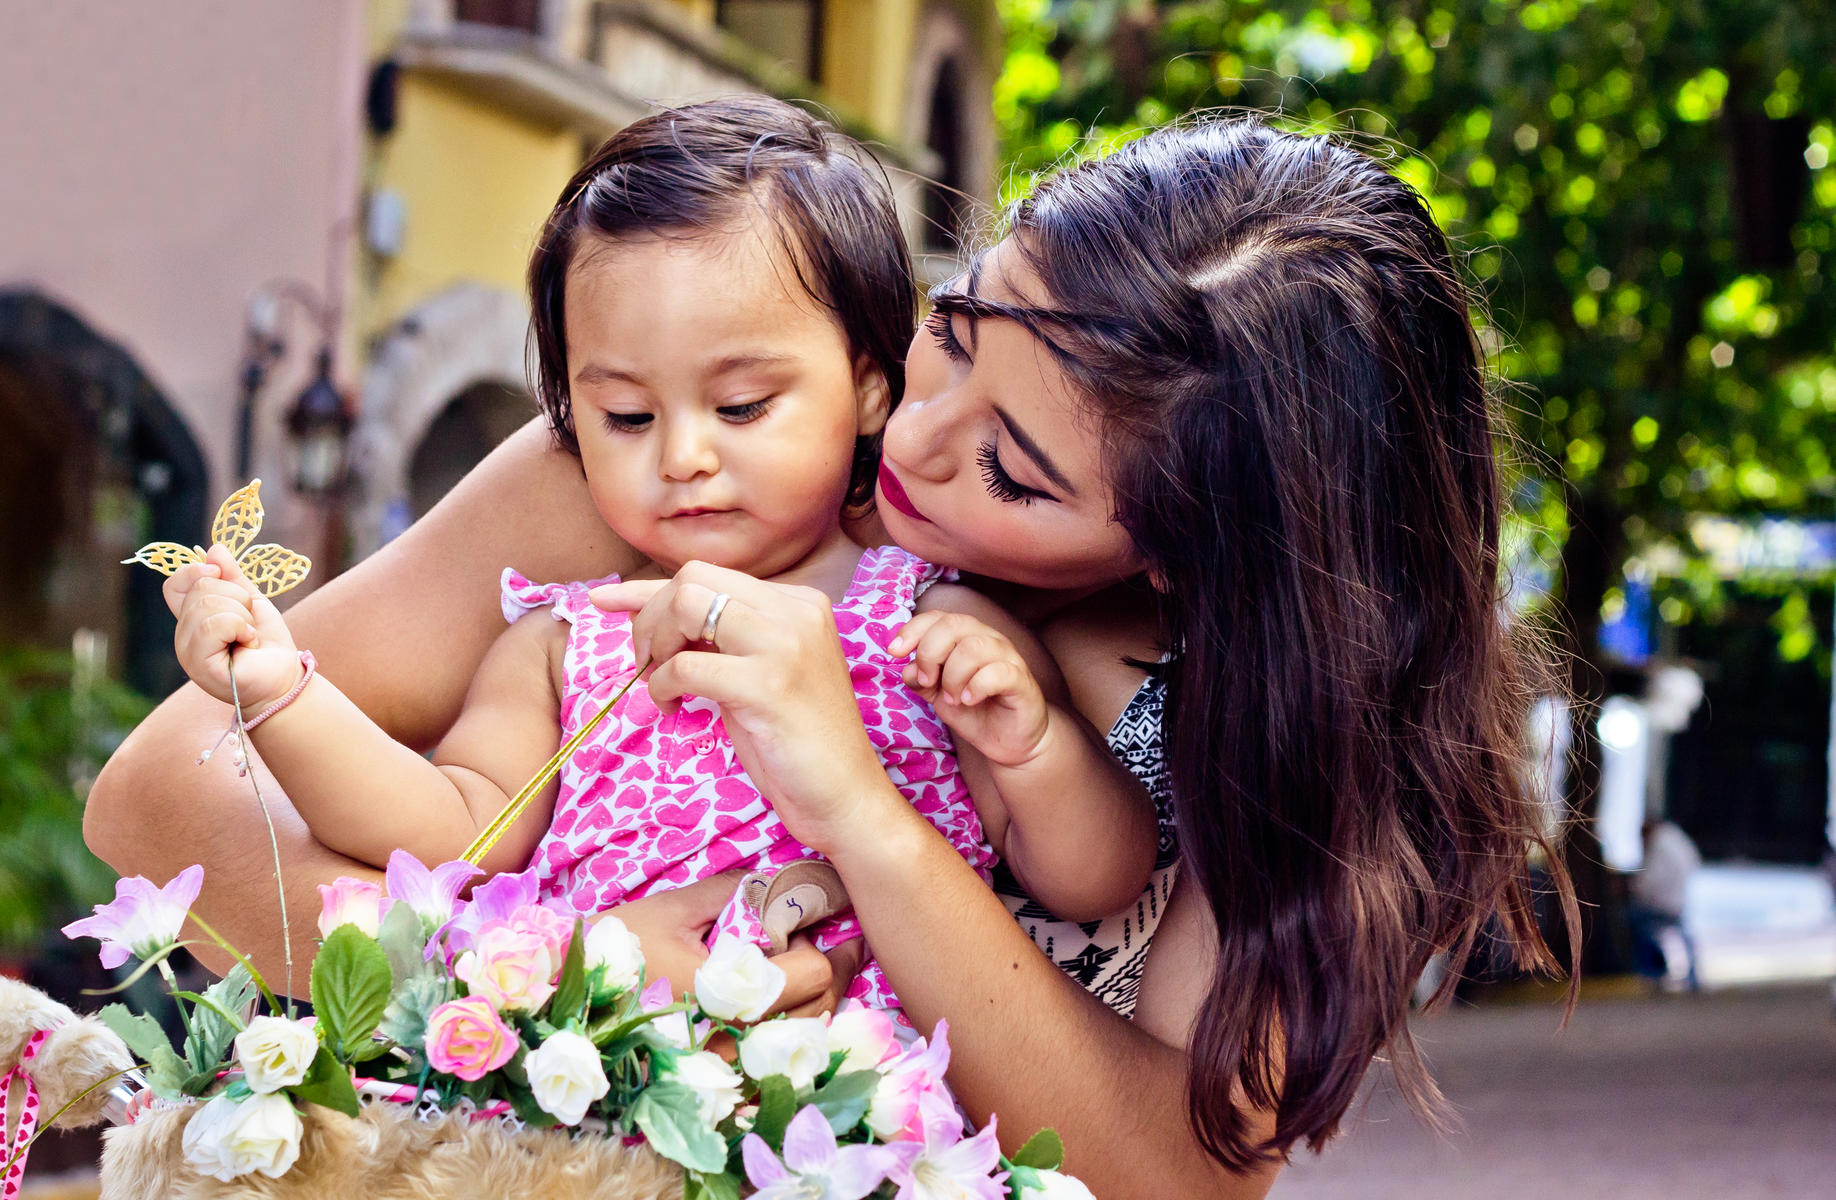 What It's Like to Be a Mom In Latin America